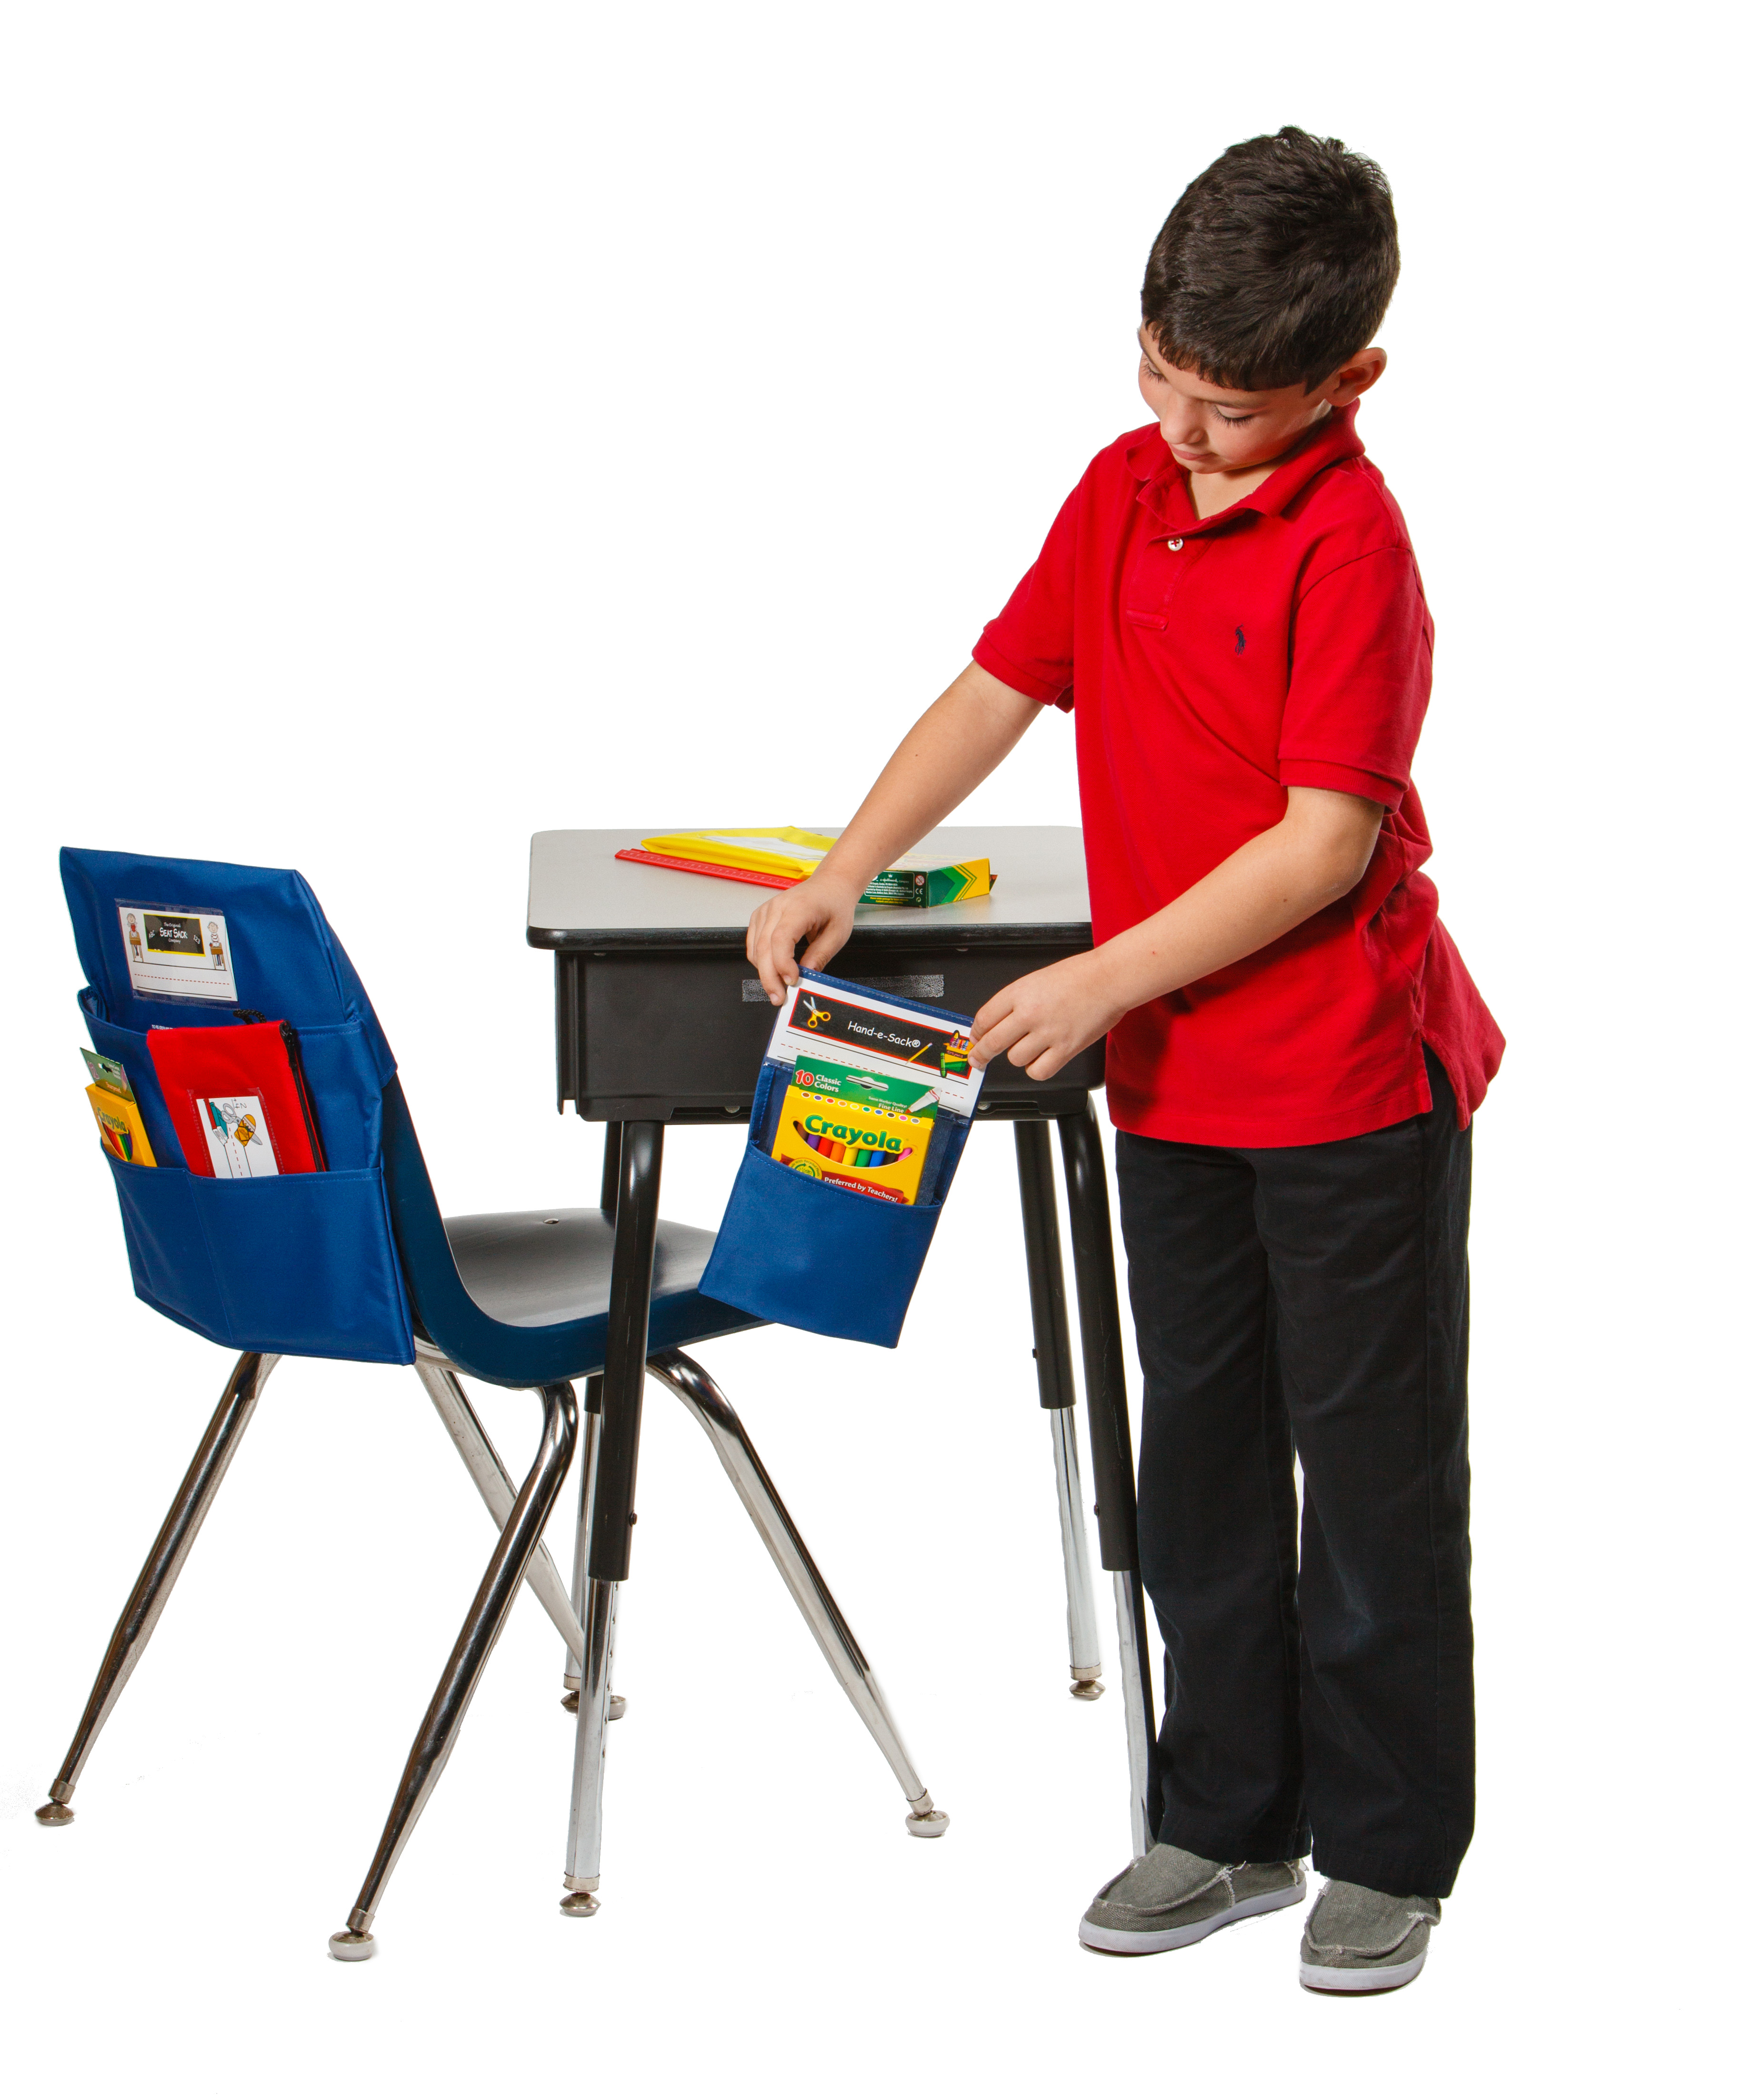 Seat Sack Unveils New Classroom Organizers for Back-to-School